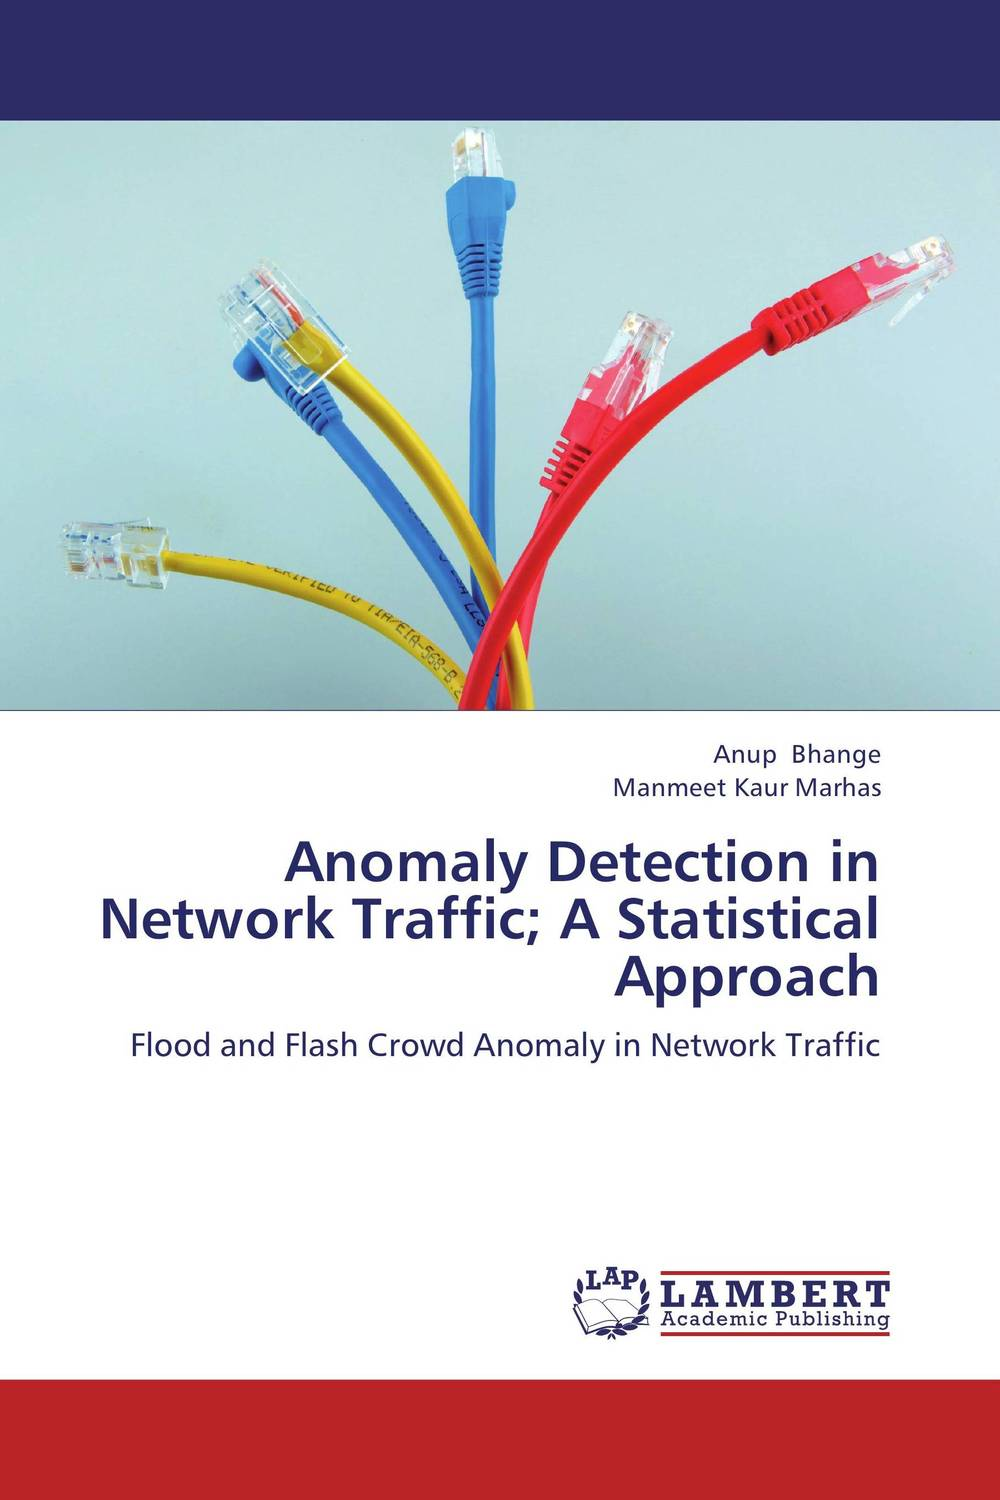 Anomaly Detection in Network Traffic; A Statistical Approach tigabu dagne akal constructing predictive model for network intrusion detection